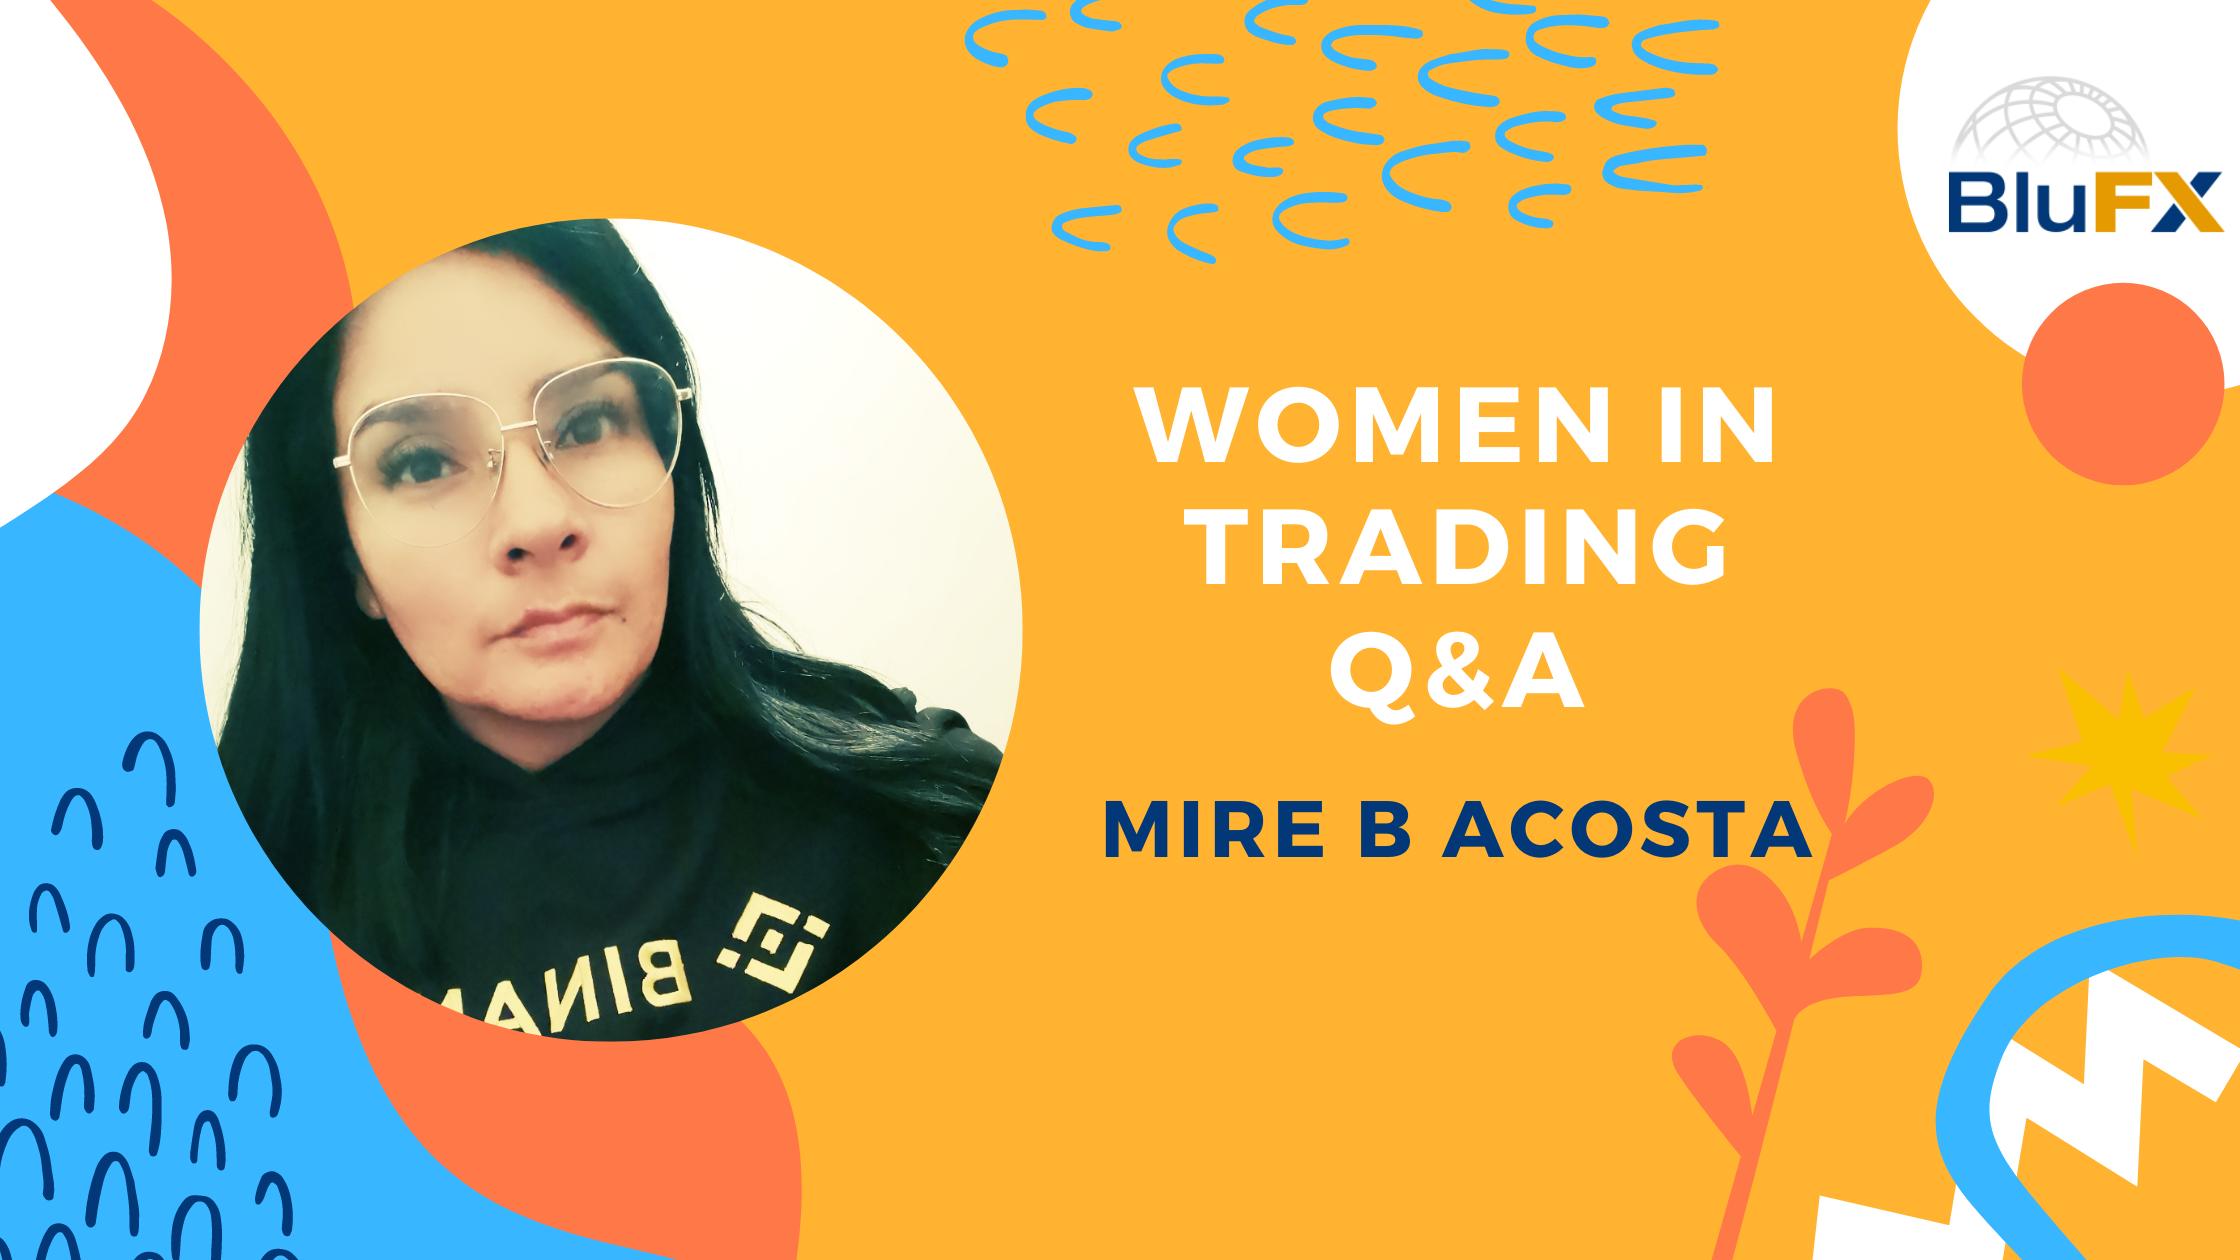 Women in Trading Mire B Acosta